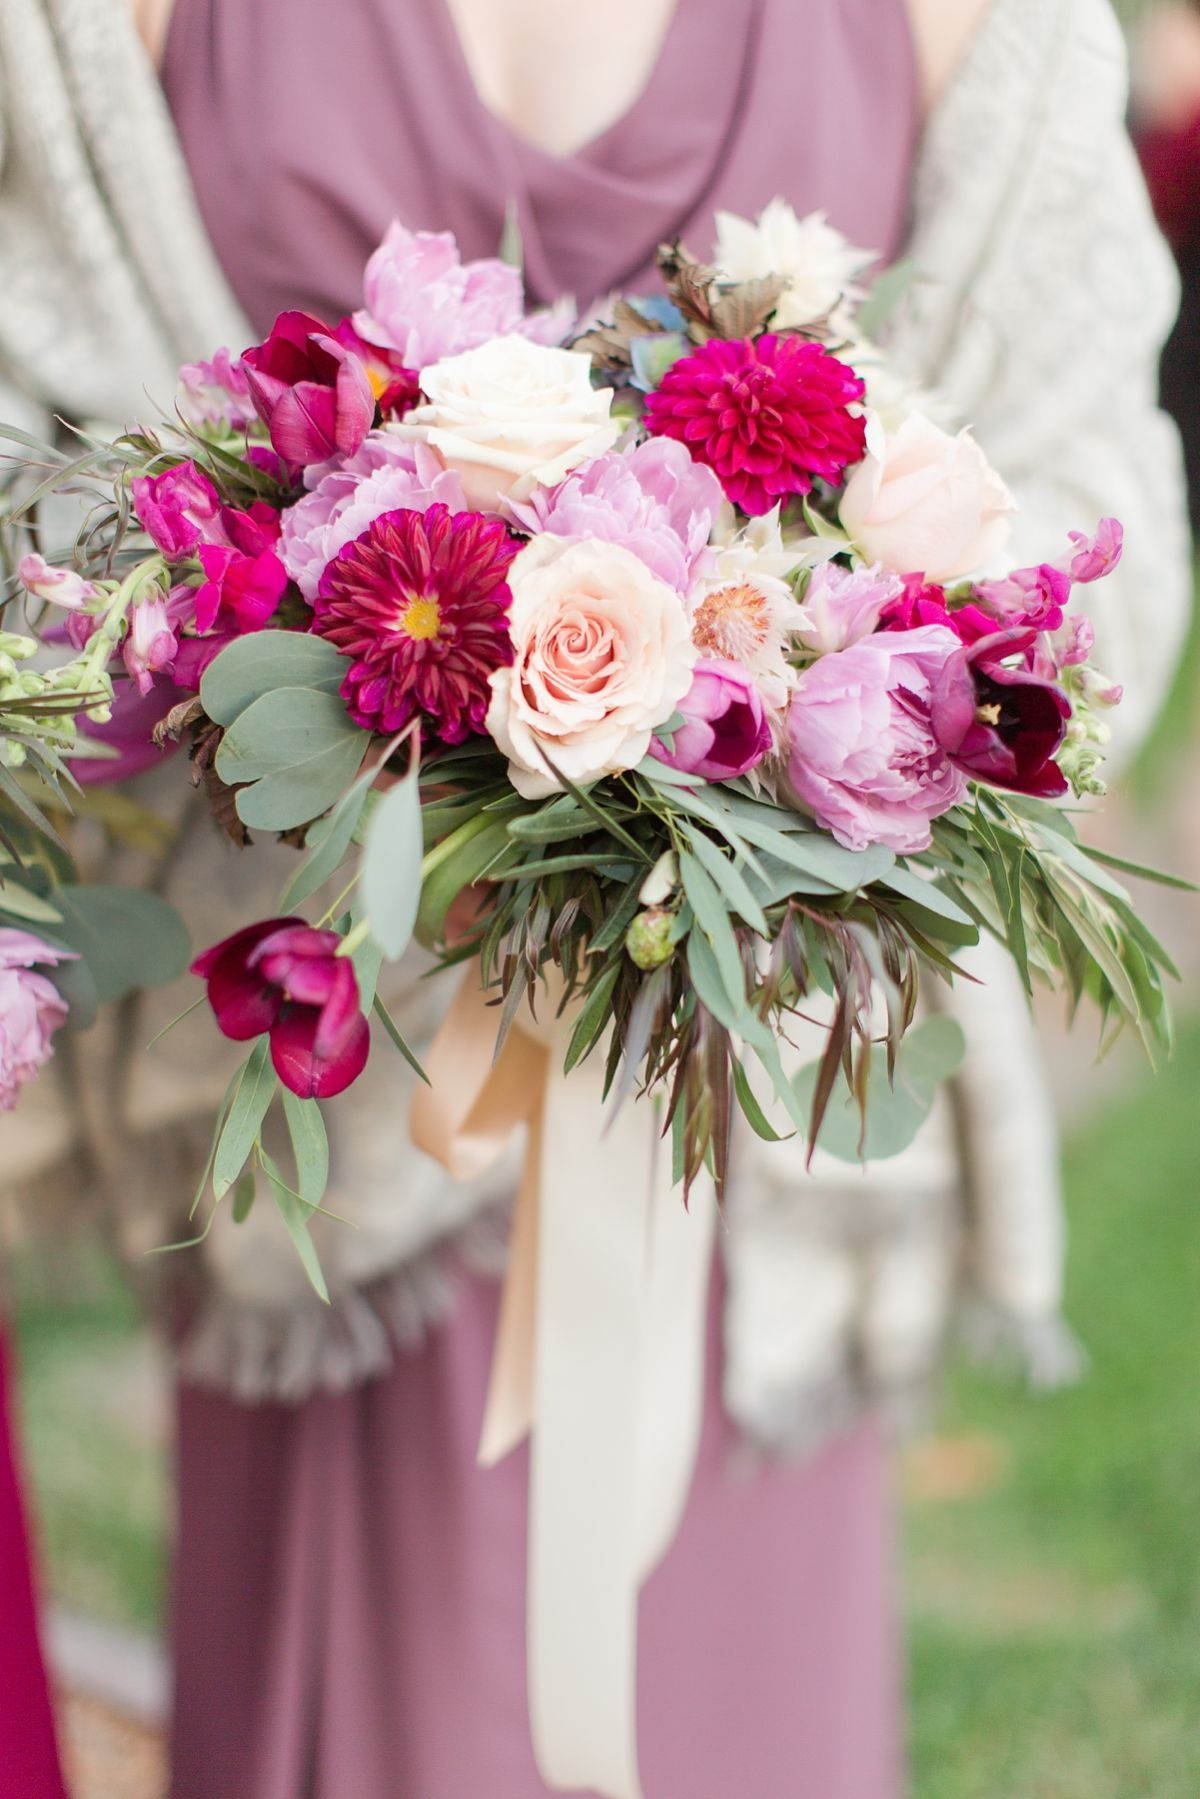 Wedding bouquets not flowers  Wedding At The Inn at Willow Grove in Orange Virginia with accents